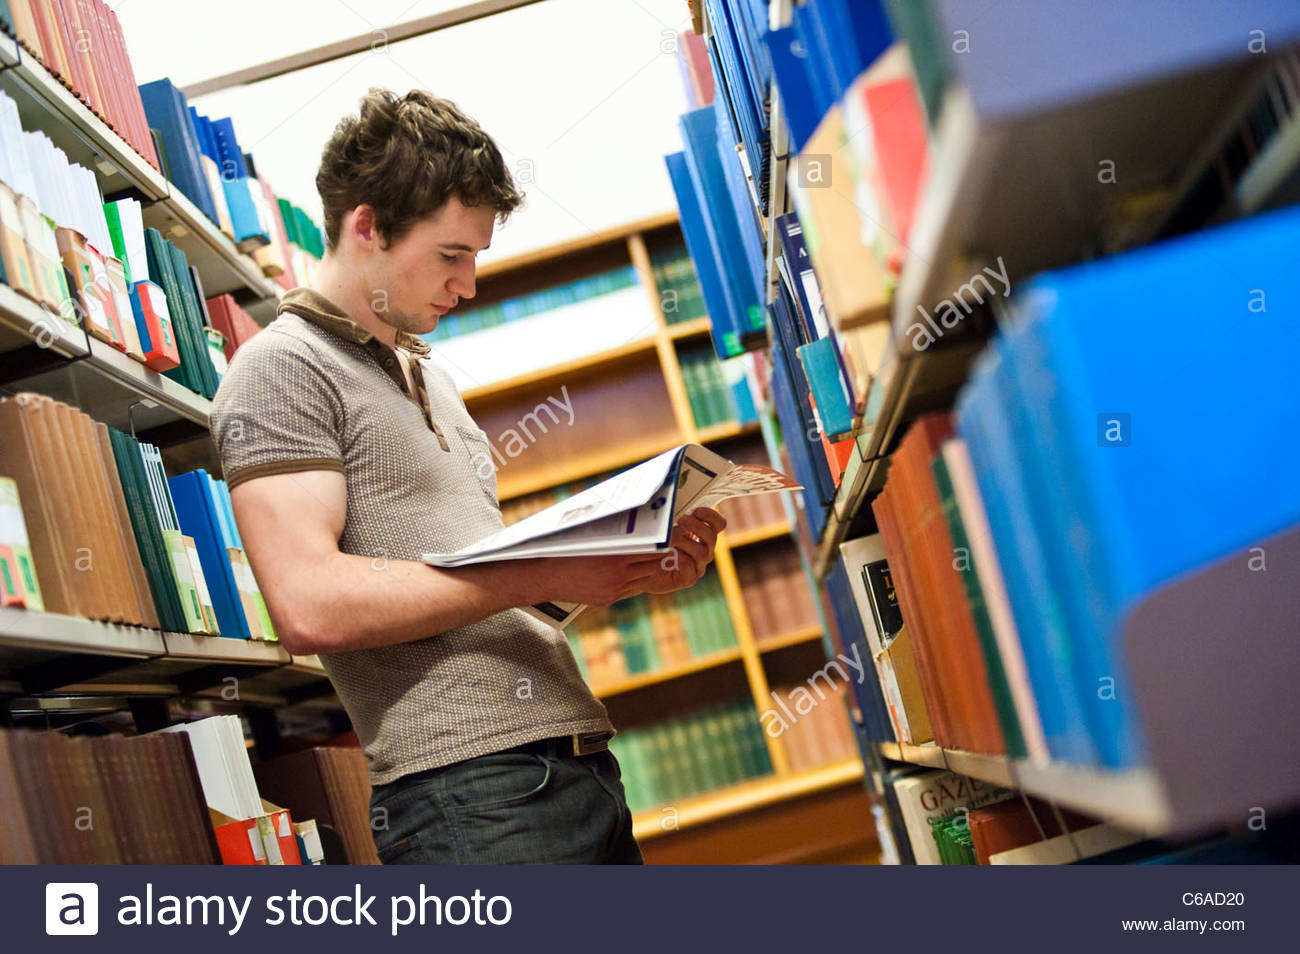 university library book shelf stacks student reading in background - Stock Image